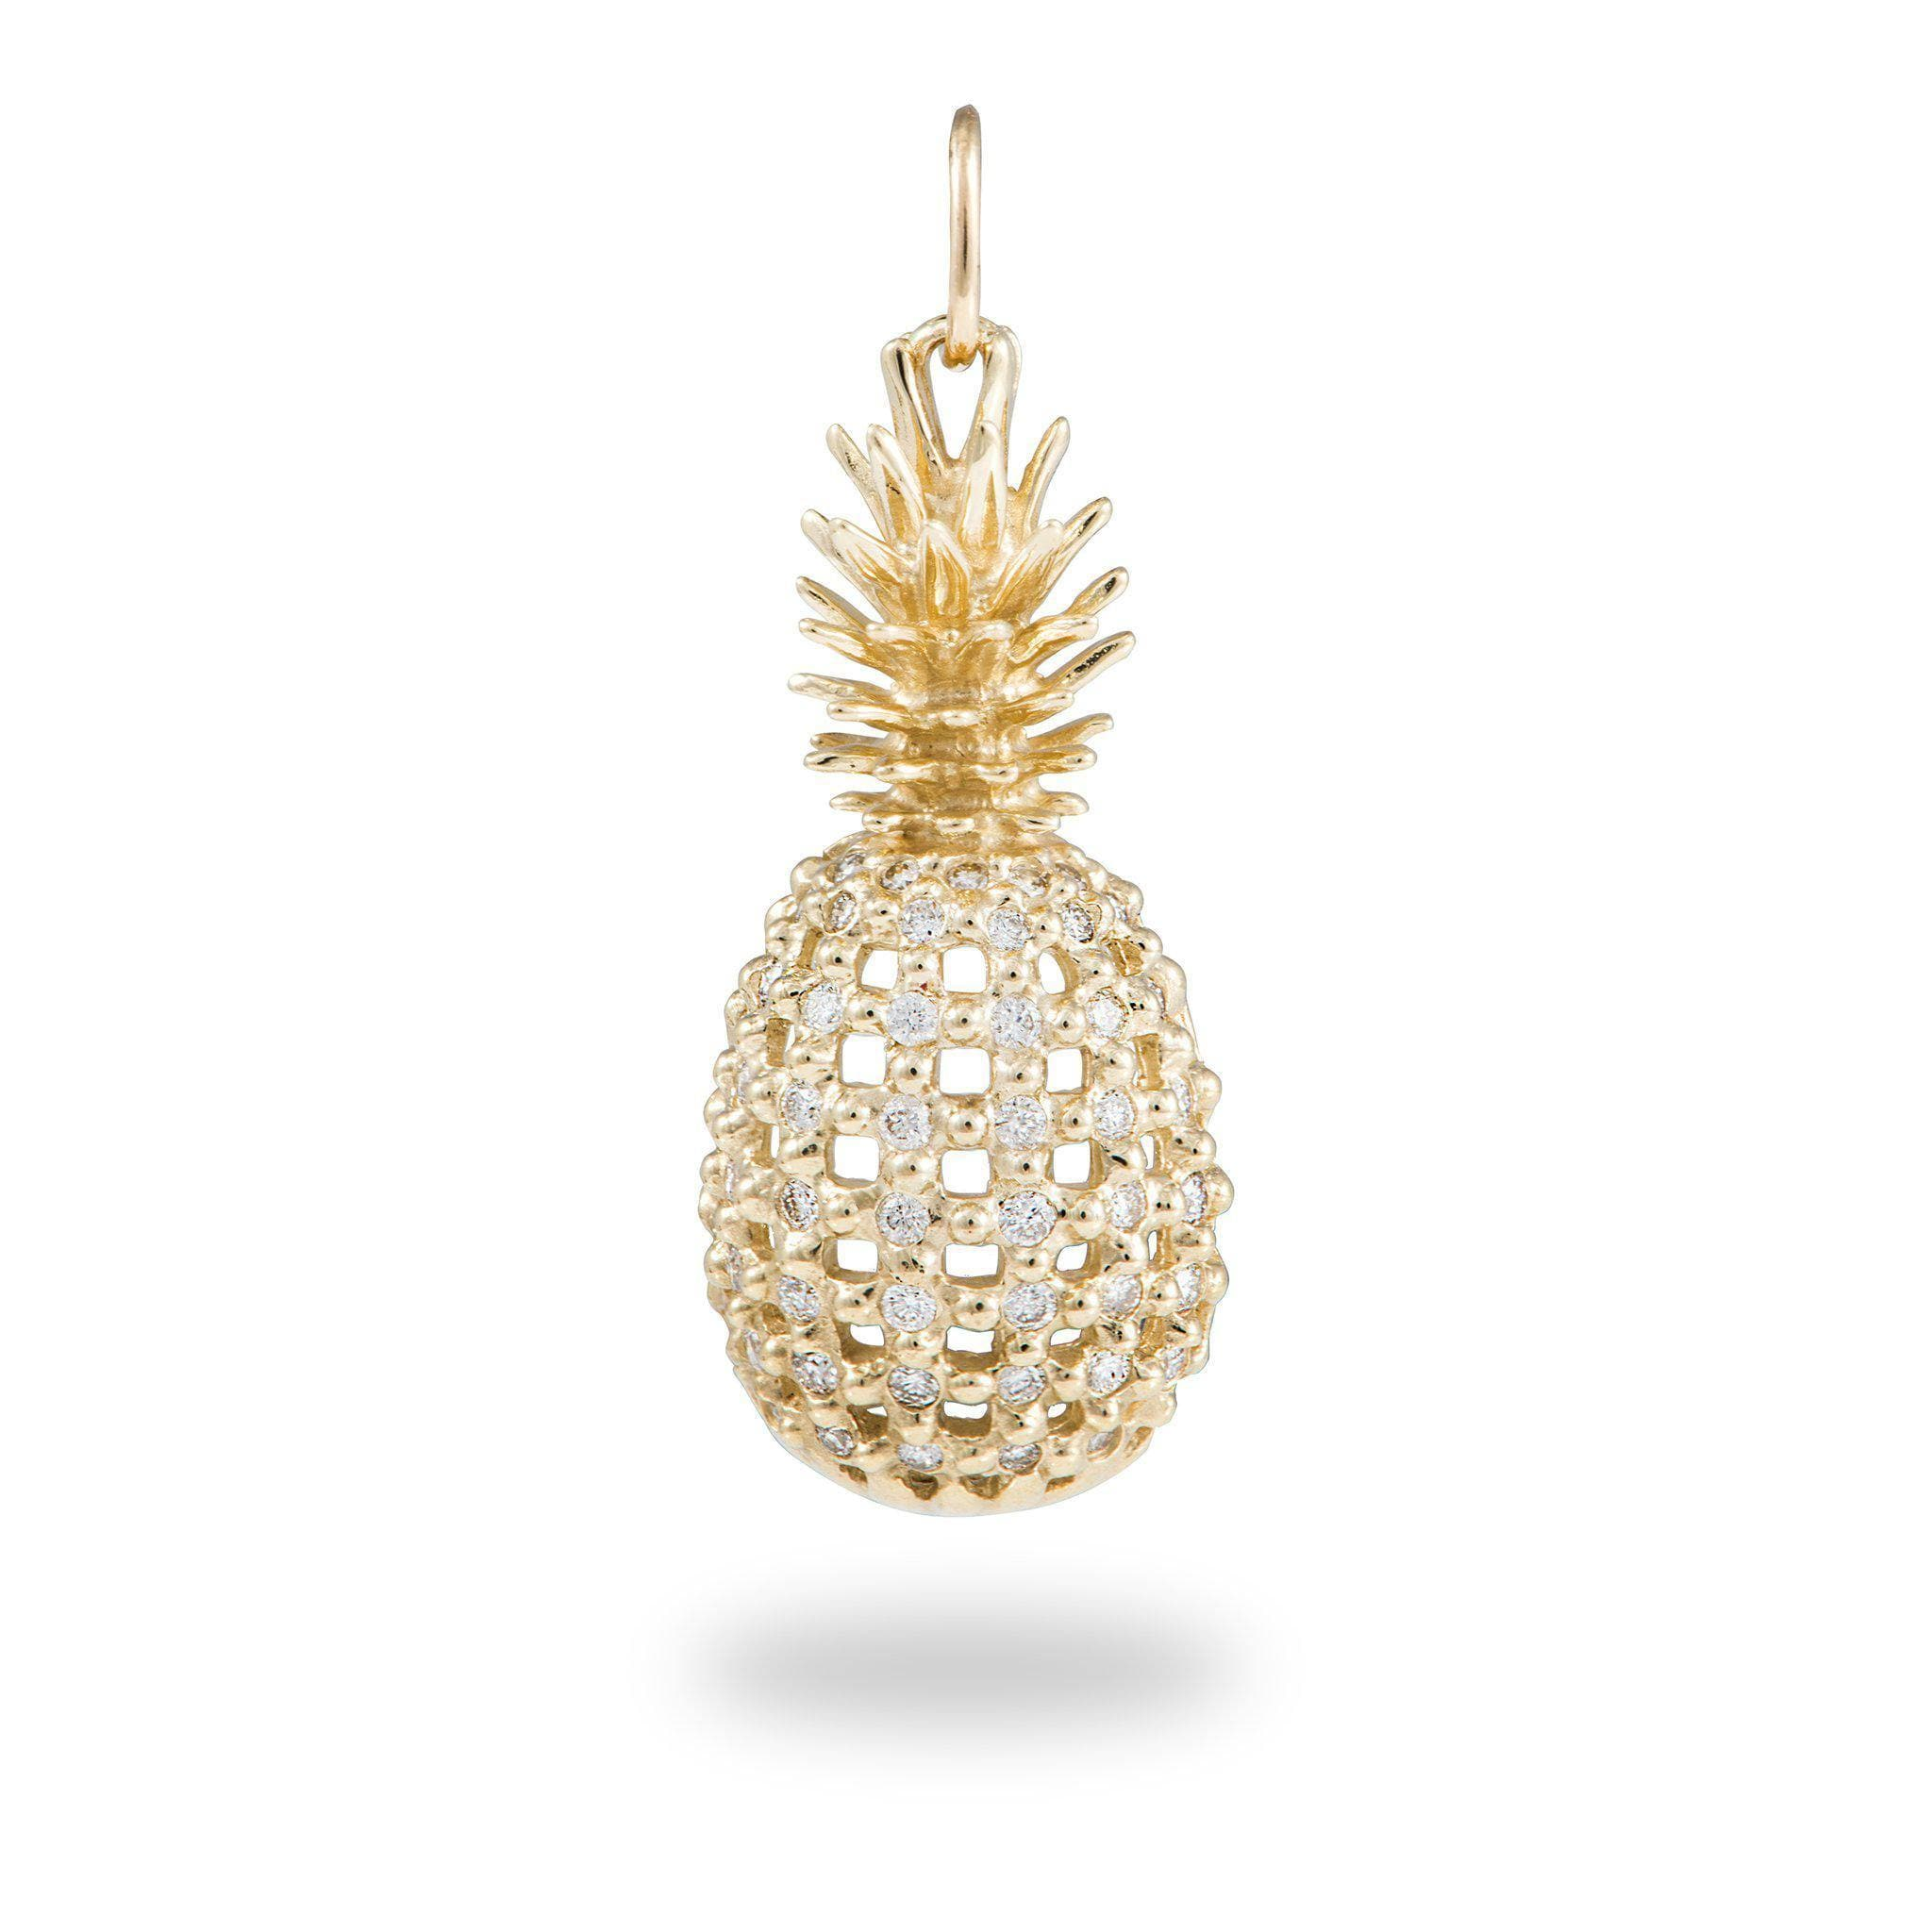 Pineapple Pendant With Diamonds In 14k Yellow Gold